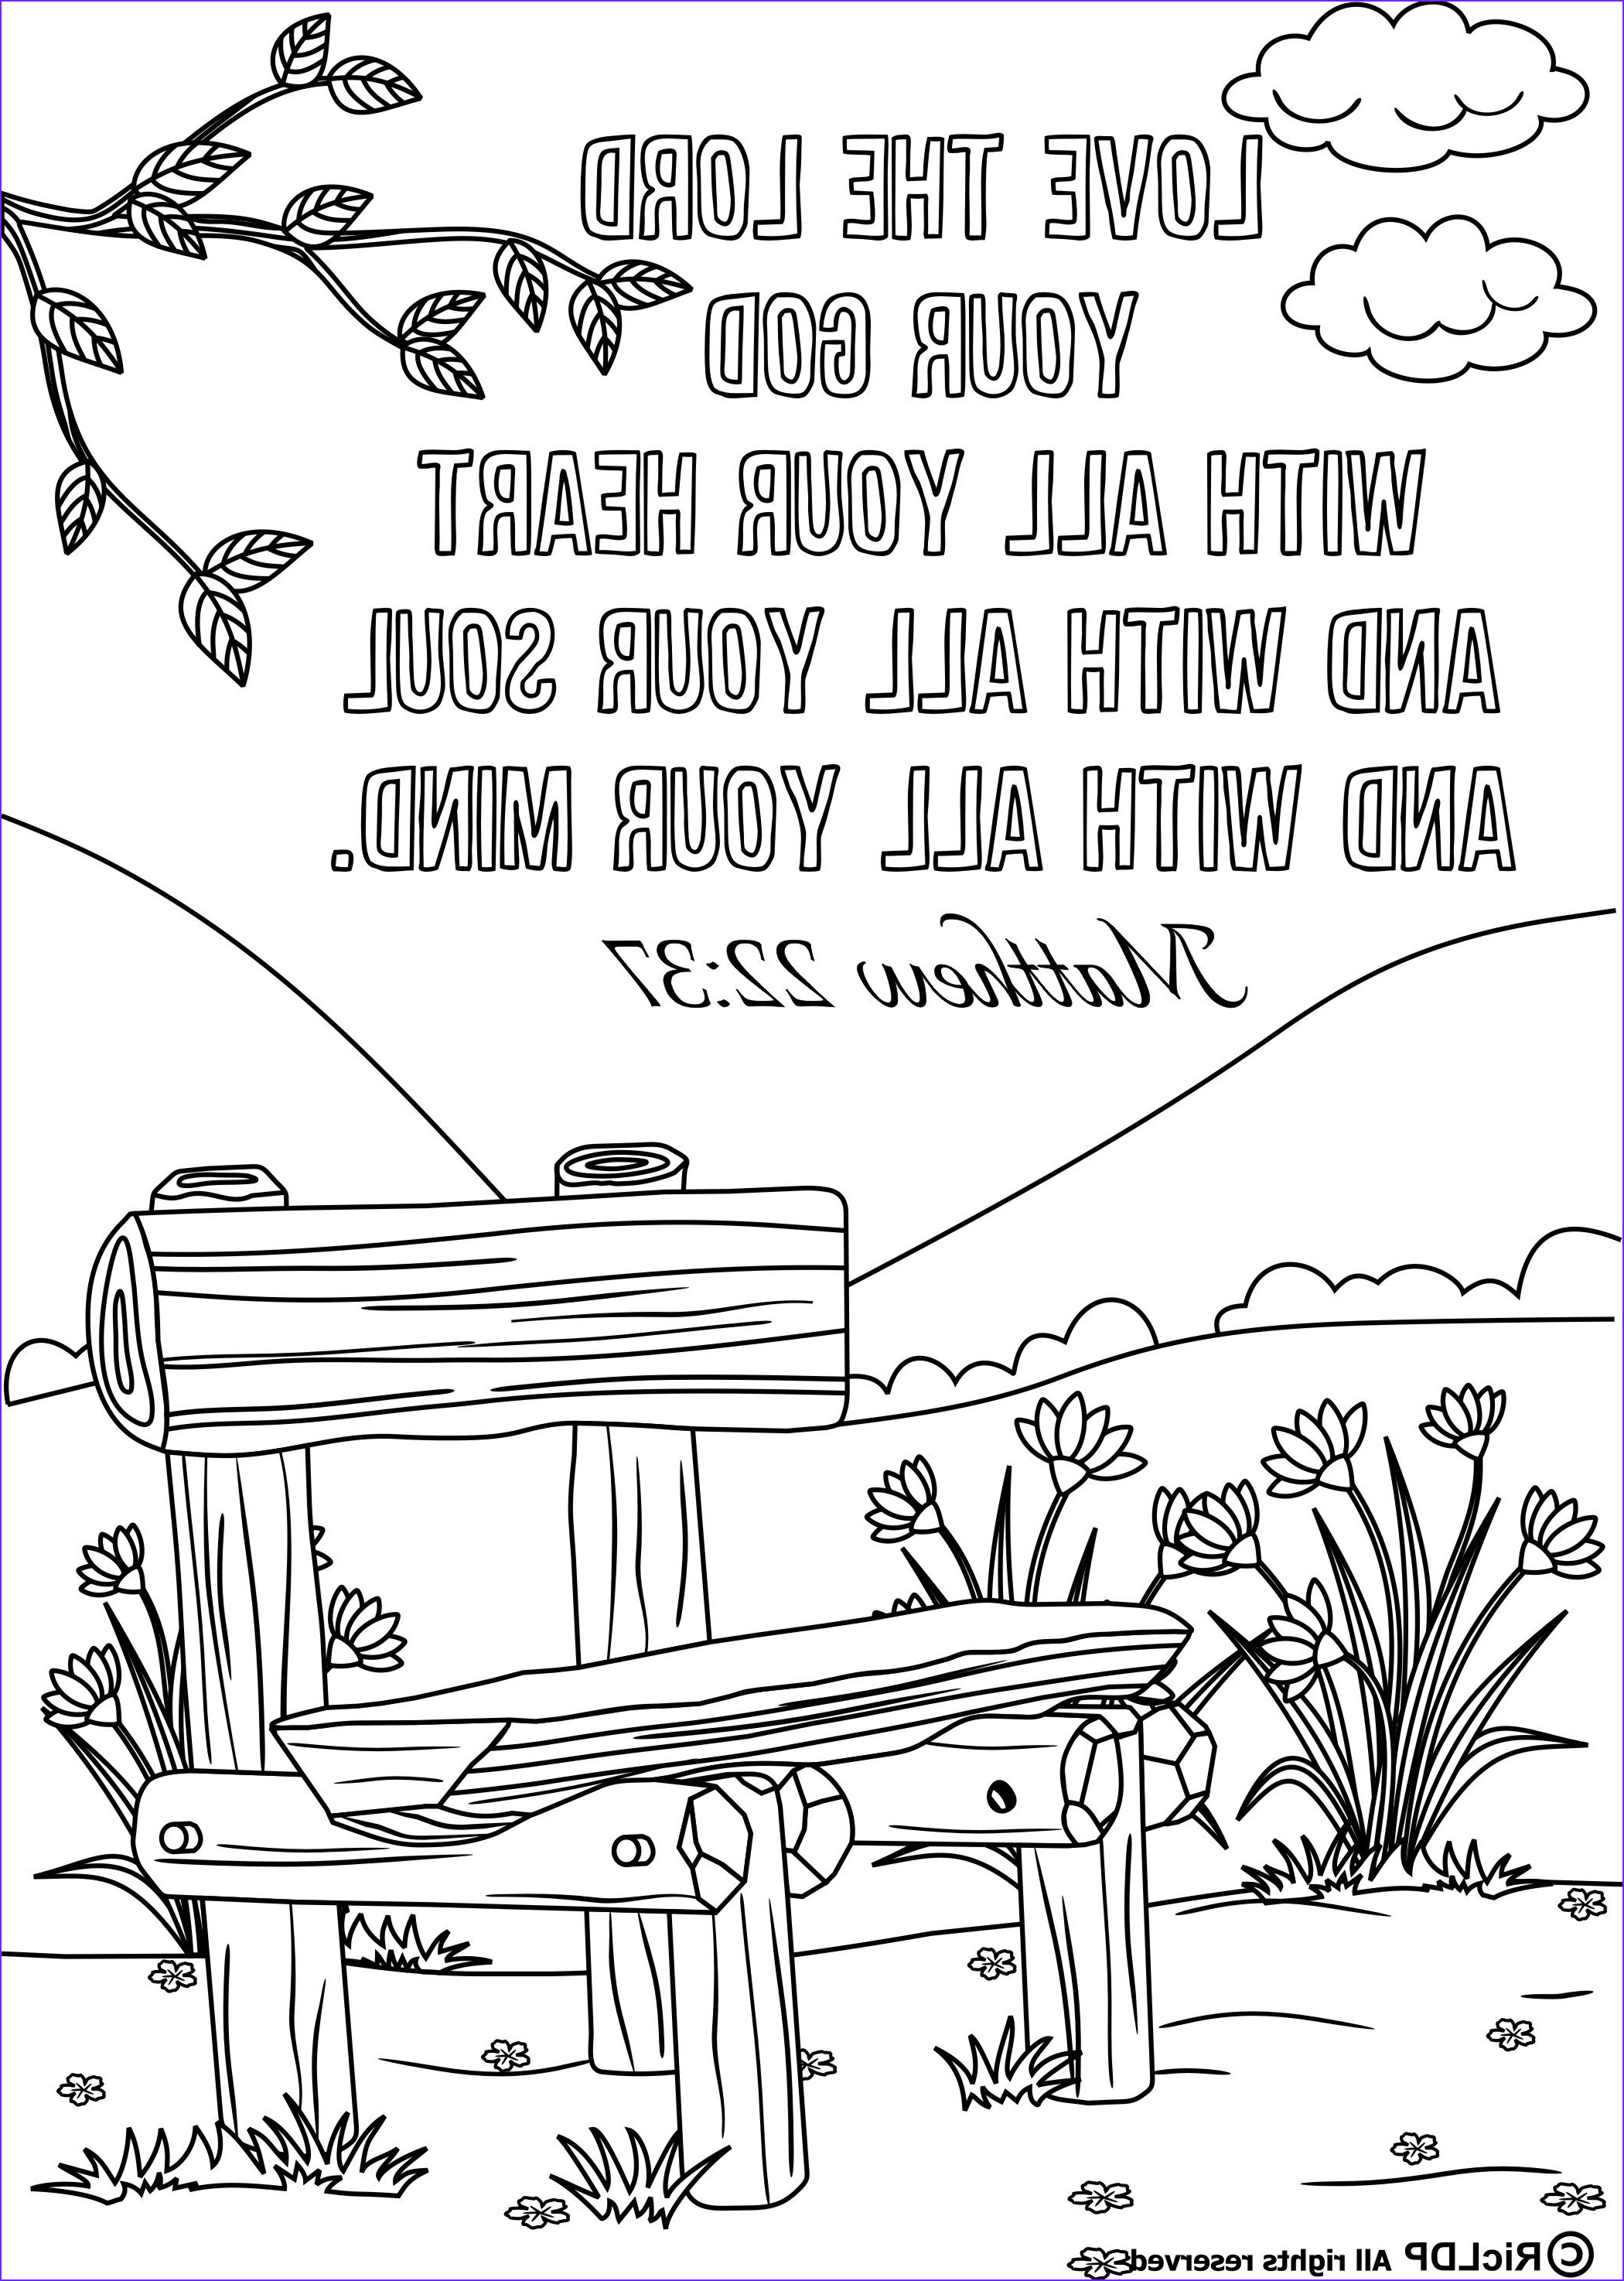 Free Coloring Pages Pdf Unique Stock 15 Bible Verses Coloring Pages